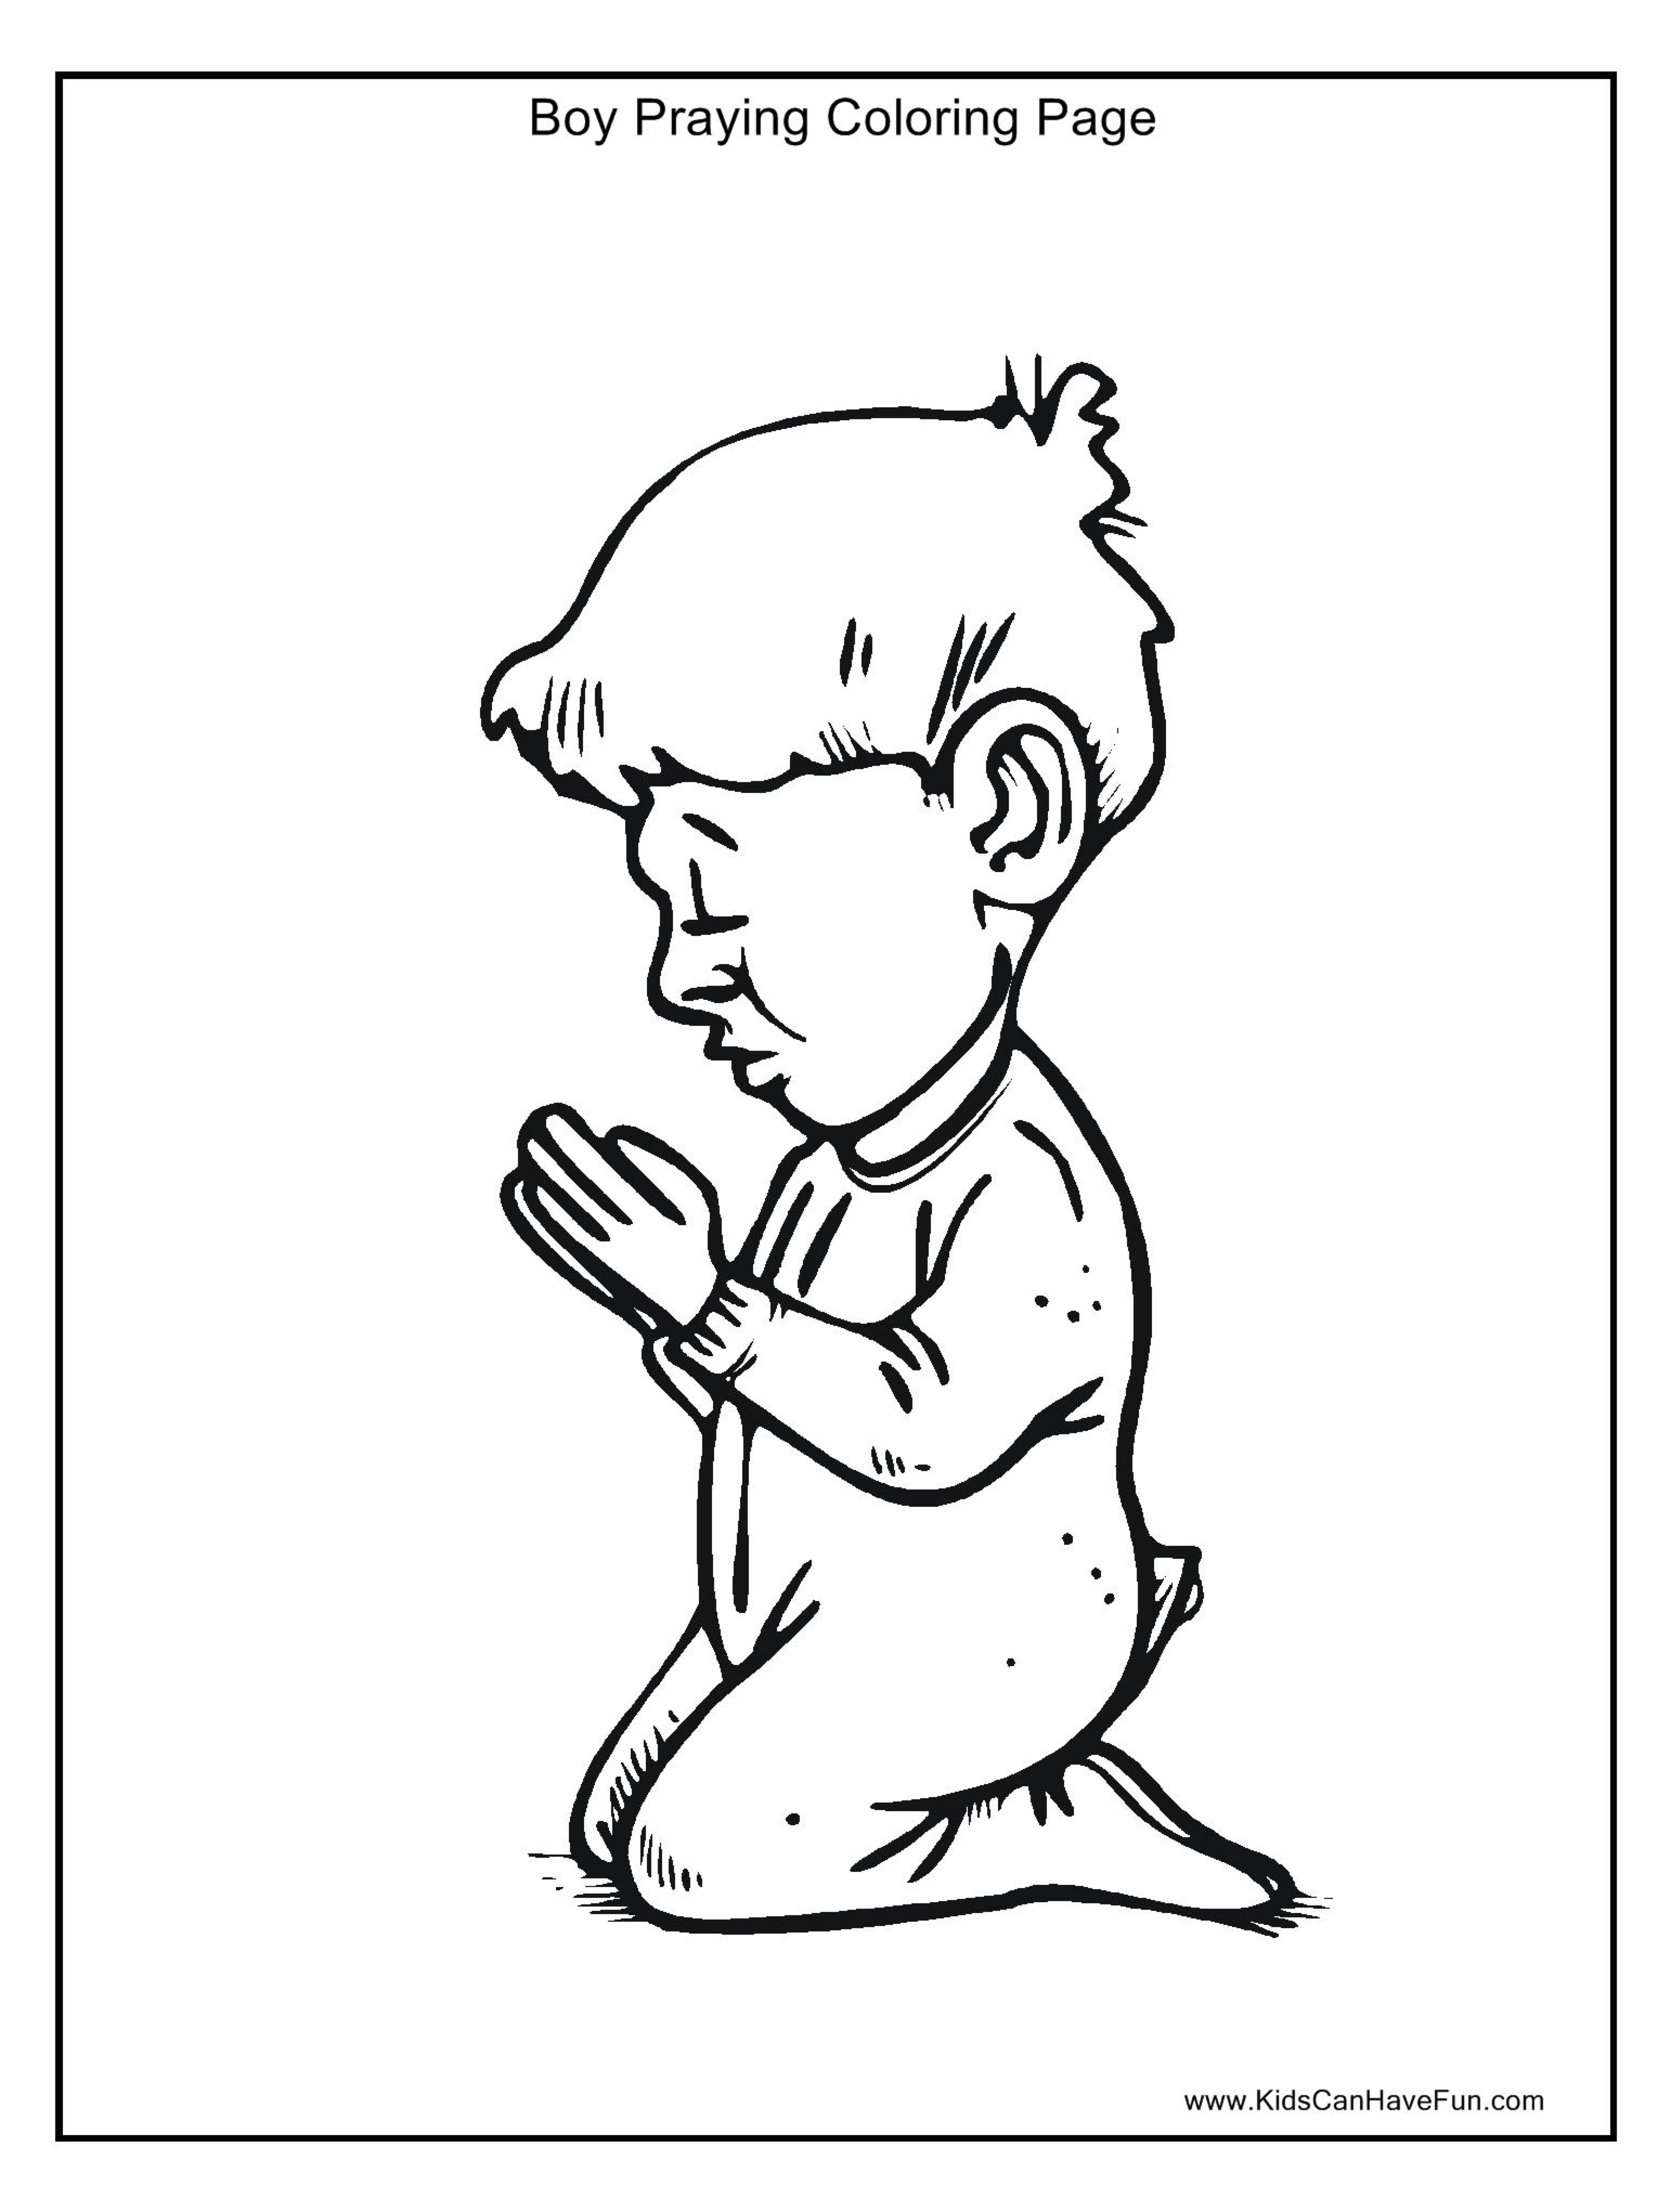 Prayer Coloring Page For Kids Coloring Home Praying Coloring Pages